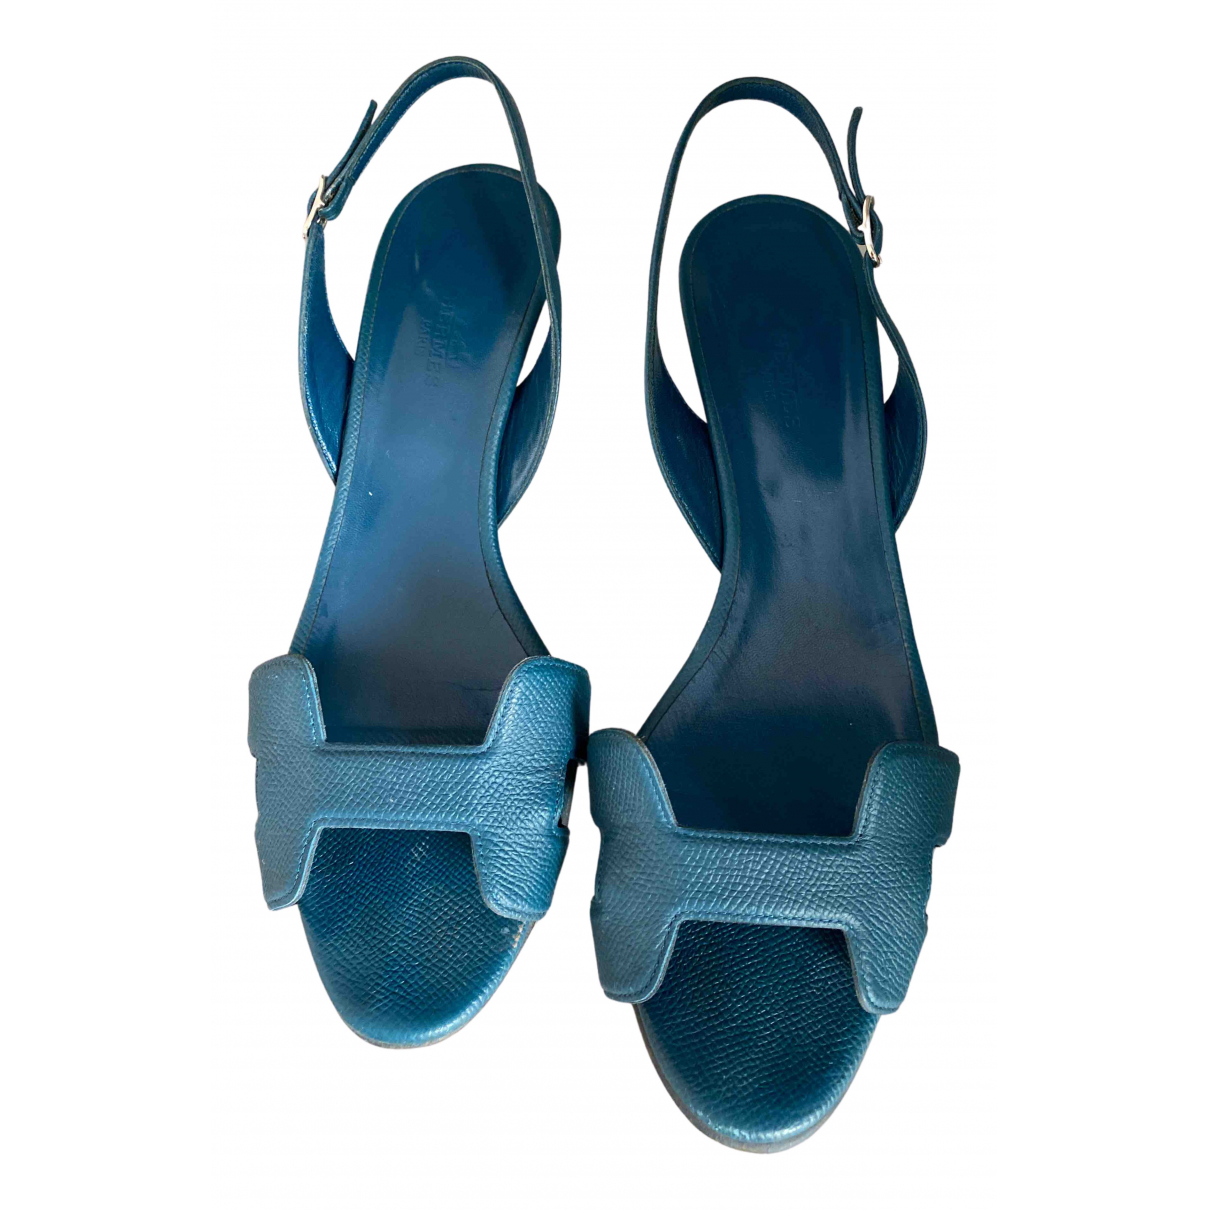 Hermes Night Sandalen in  Blau Leder